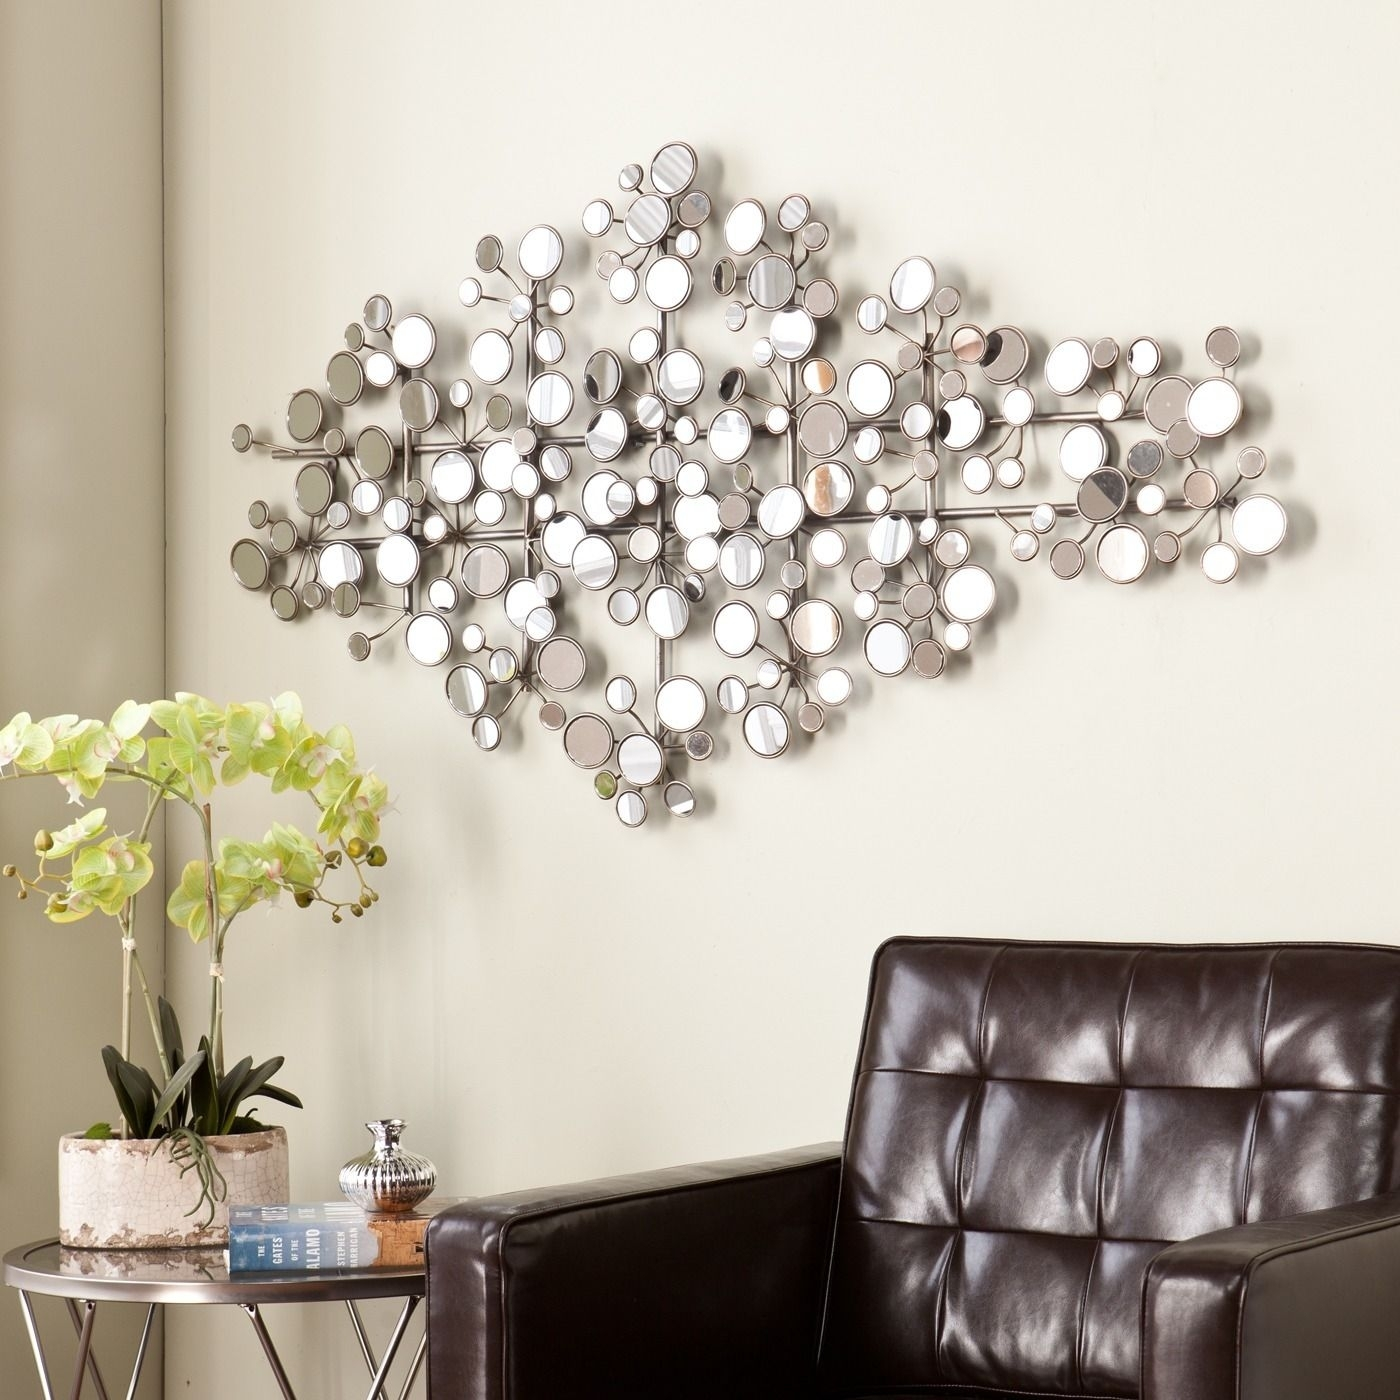 Wall Decor : Long Mirror Tall Wall Mirrors Large Decorative With Regard To Most Current Mirror Sets Wall Accents (View 9 of 15)